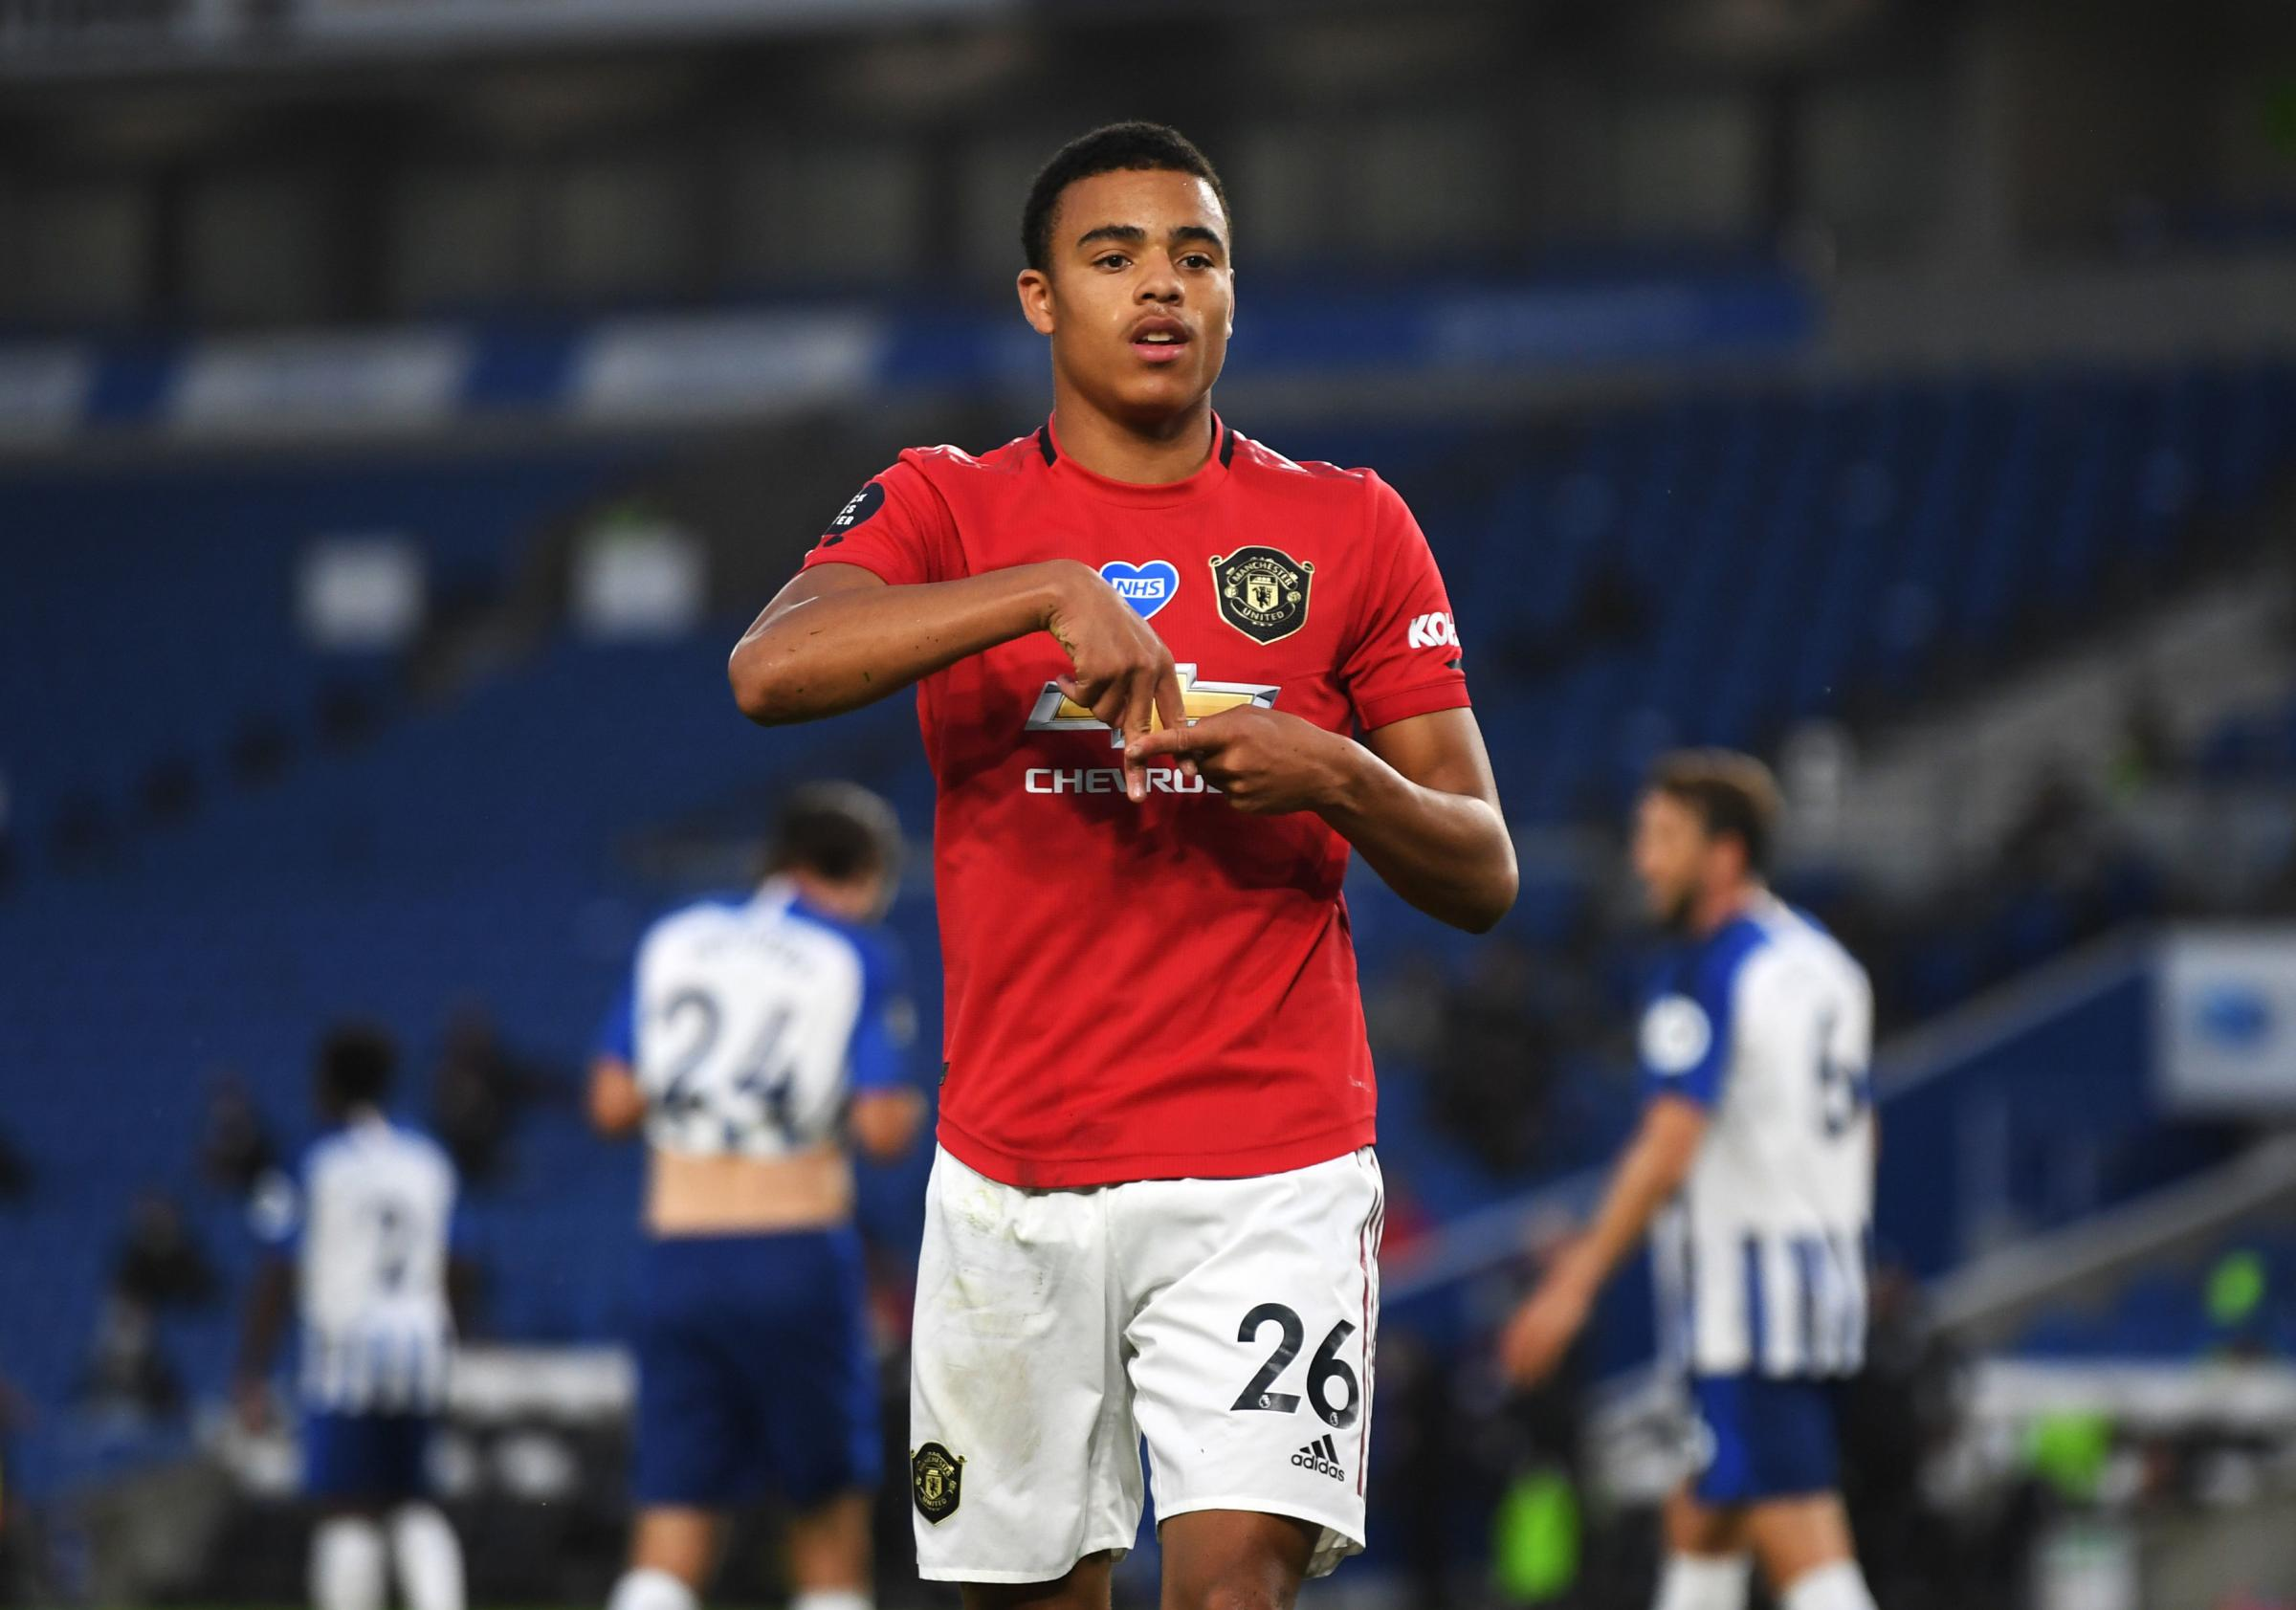 Mason Greenwood Shortlisted For Pfa Young Player Prize Bradford Telegraph And Argus